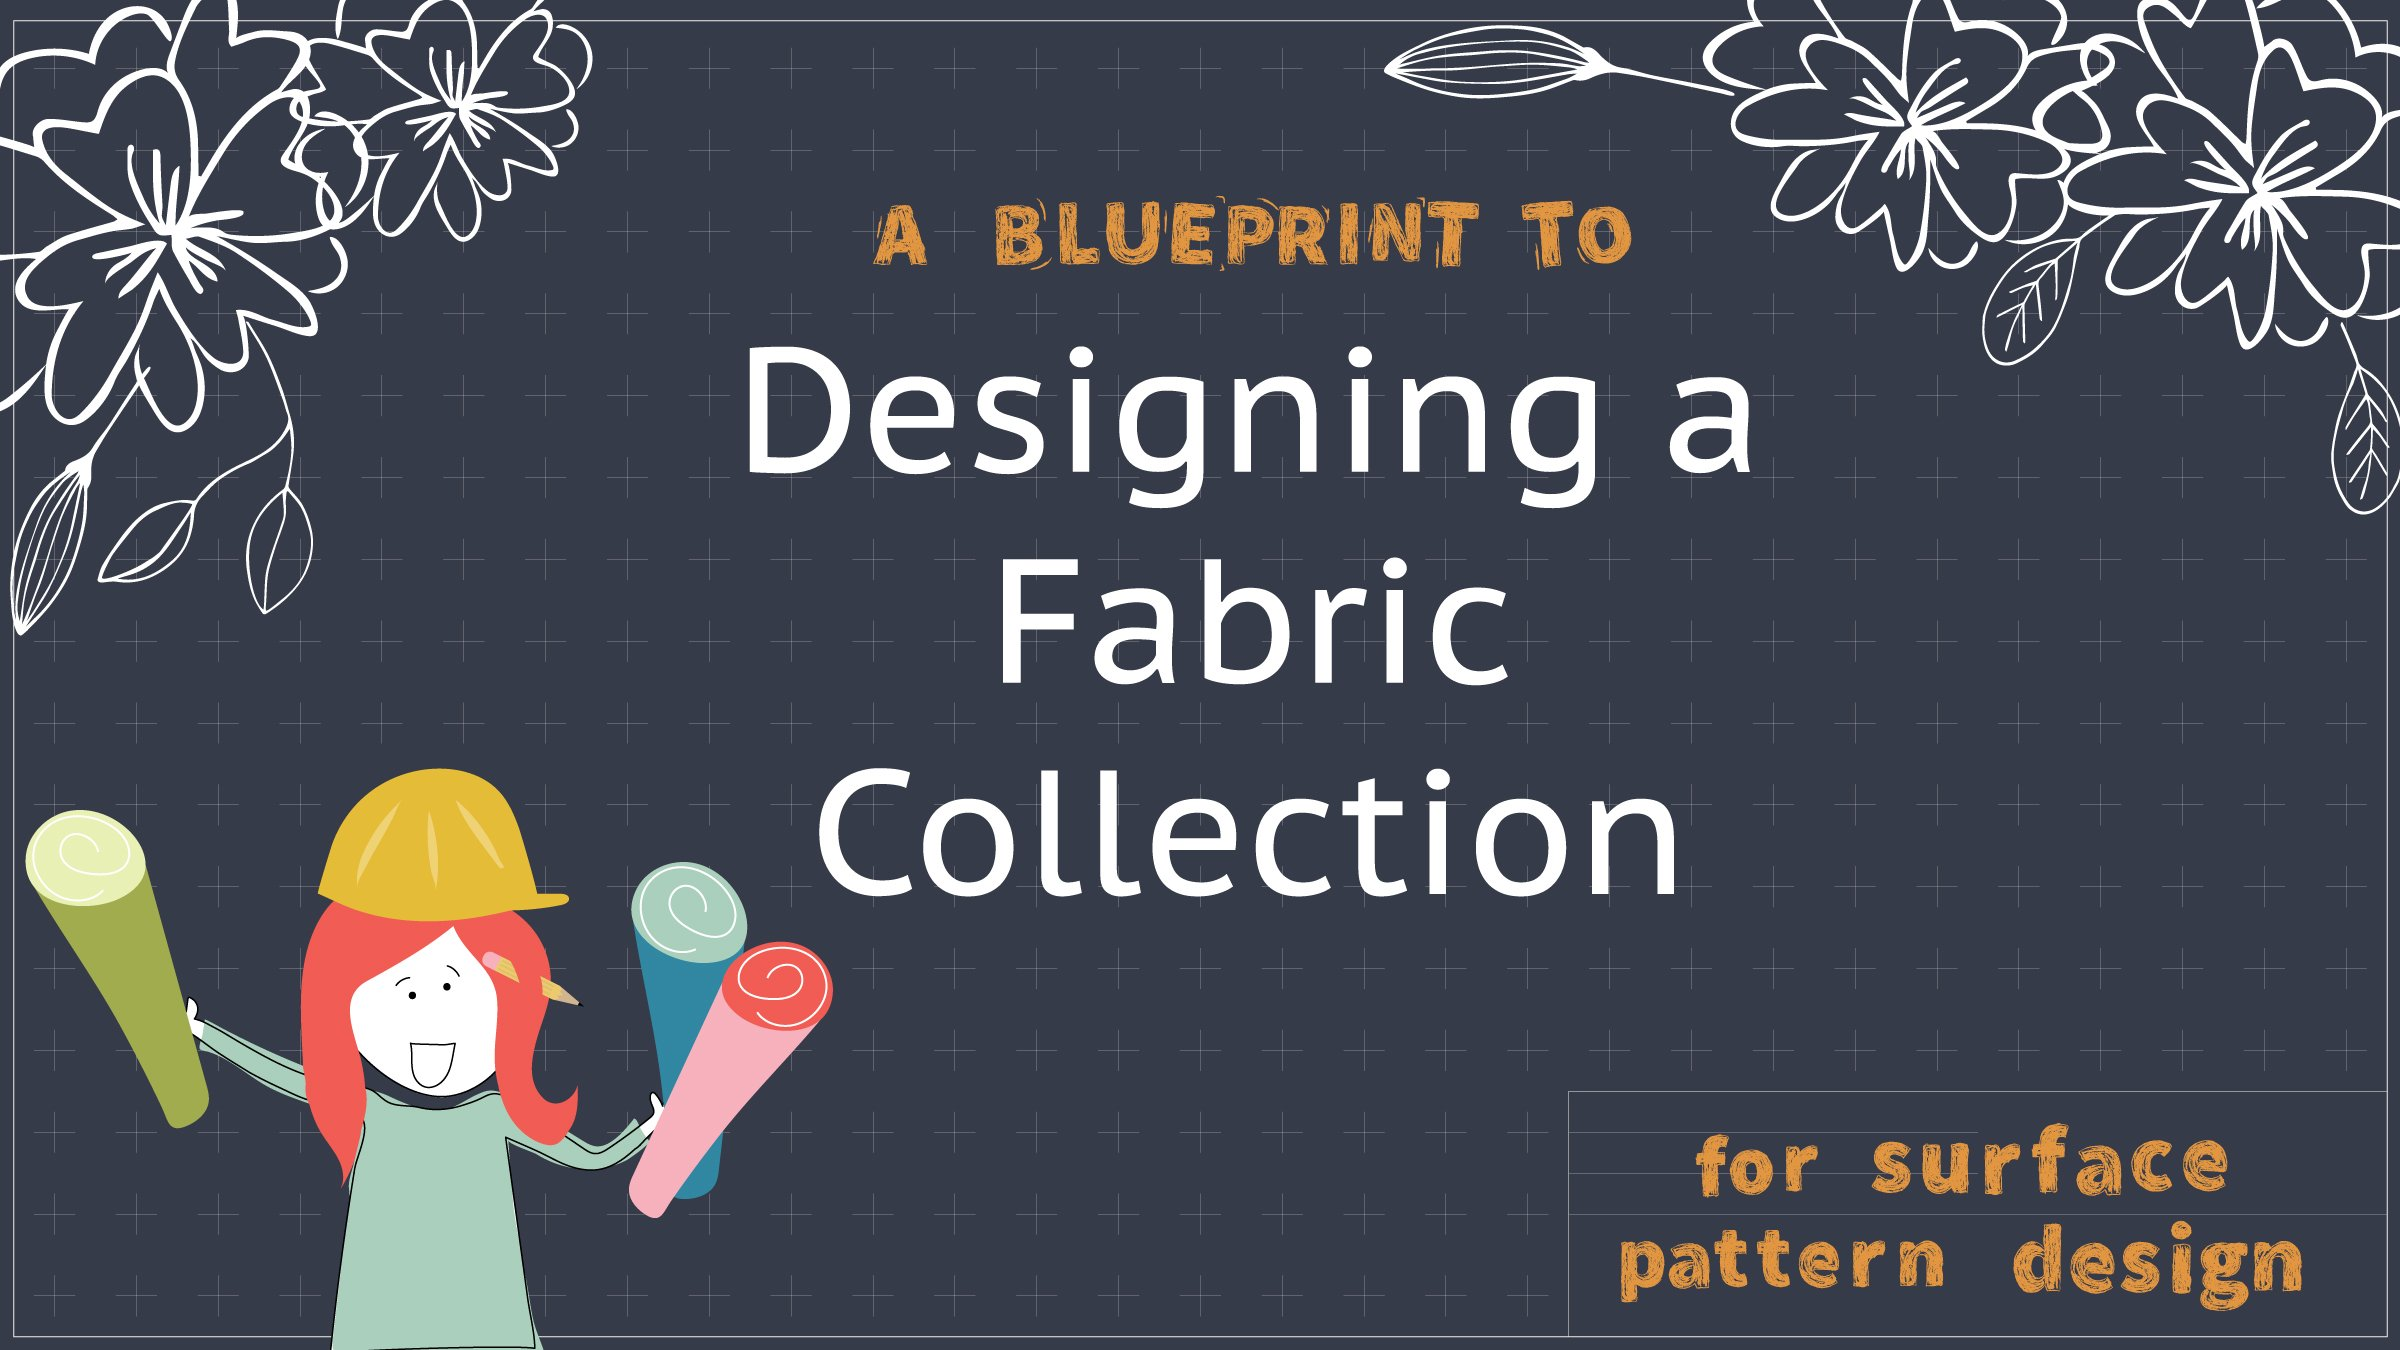 A blueprint to designing a fabric collection for surface pattern a blueprint to designing a fabric collection for surface pattern design deane christiansen skillshare malvernweather Images